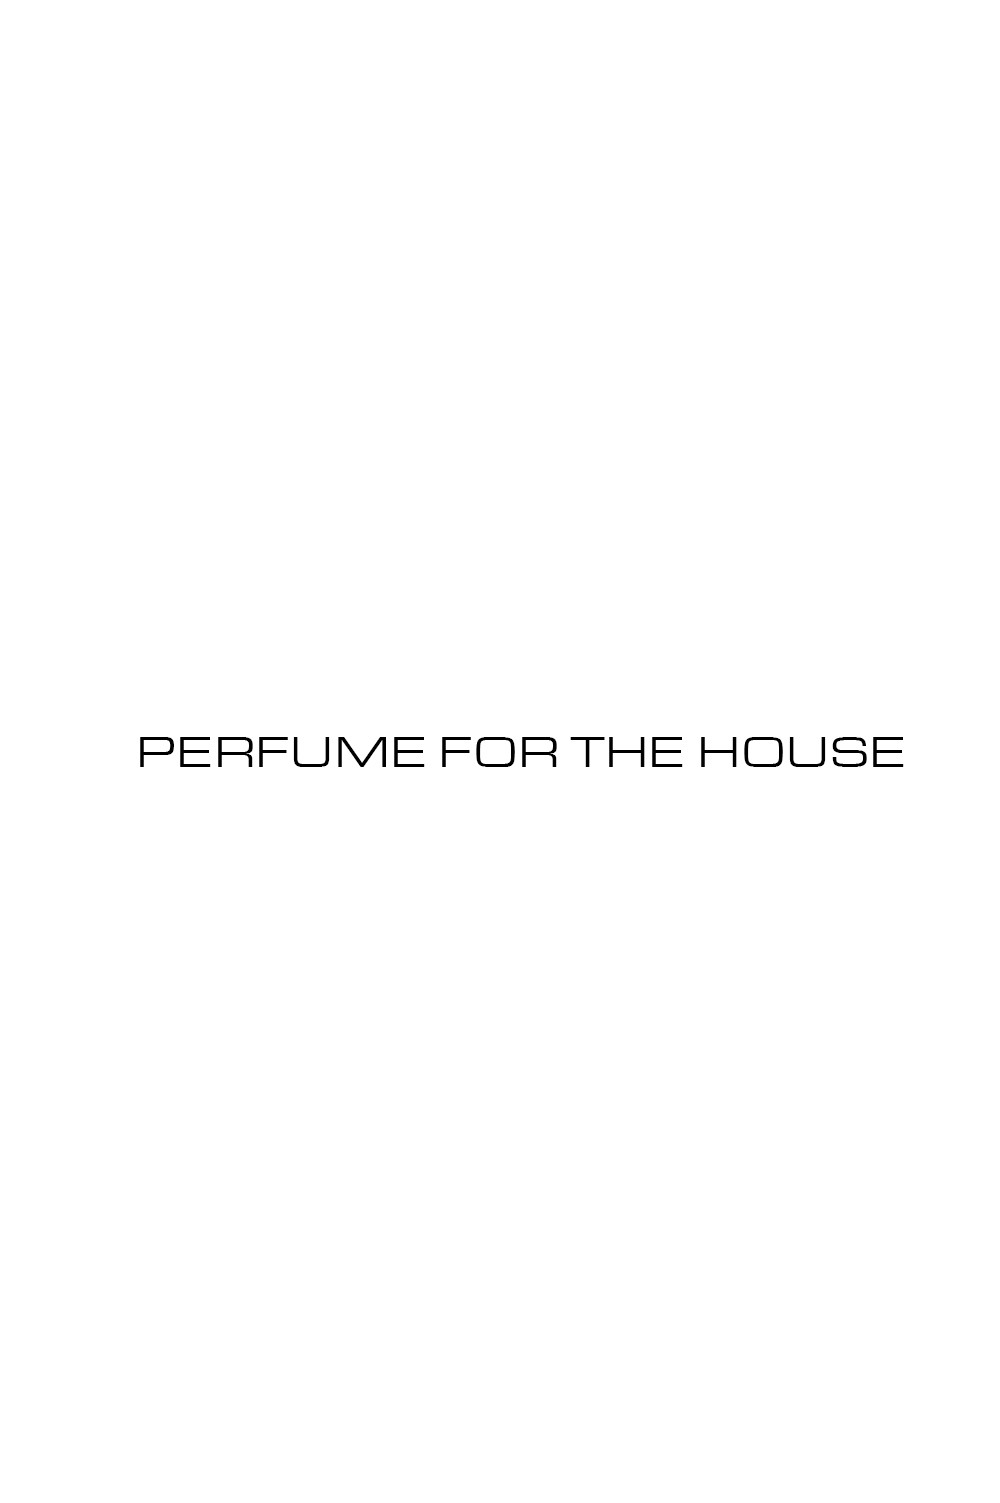 PERFUMES FOR THE HOUSE